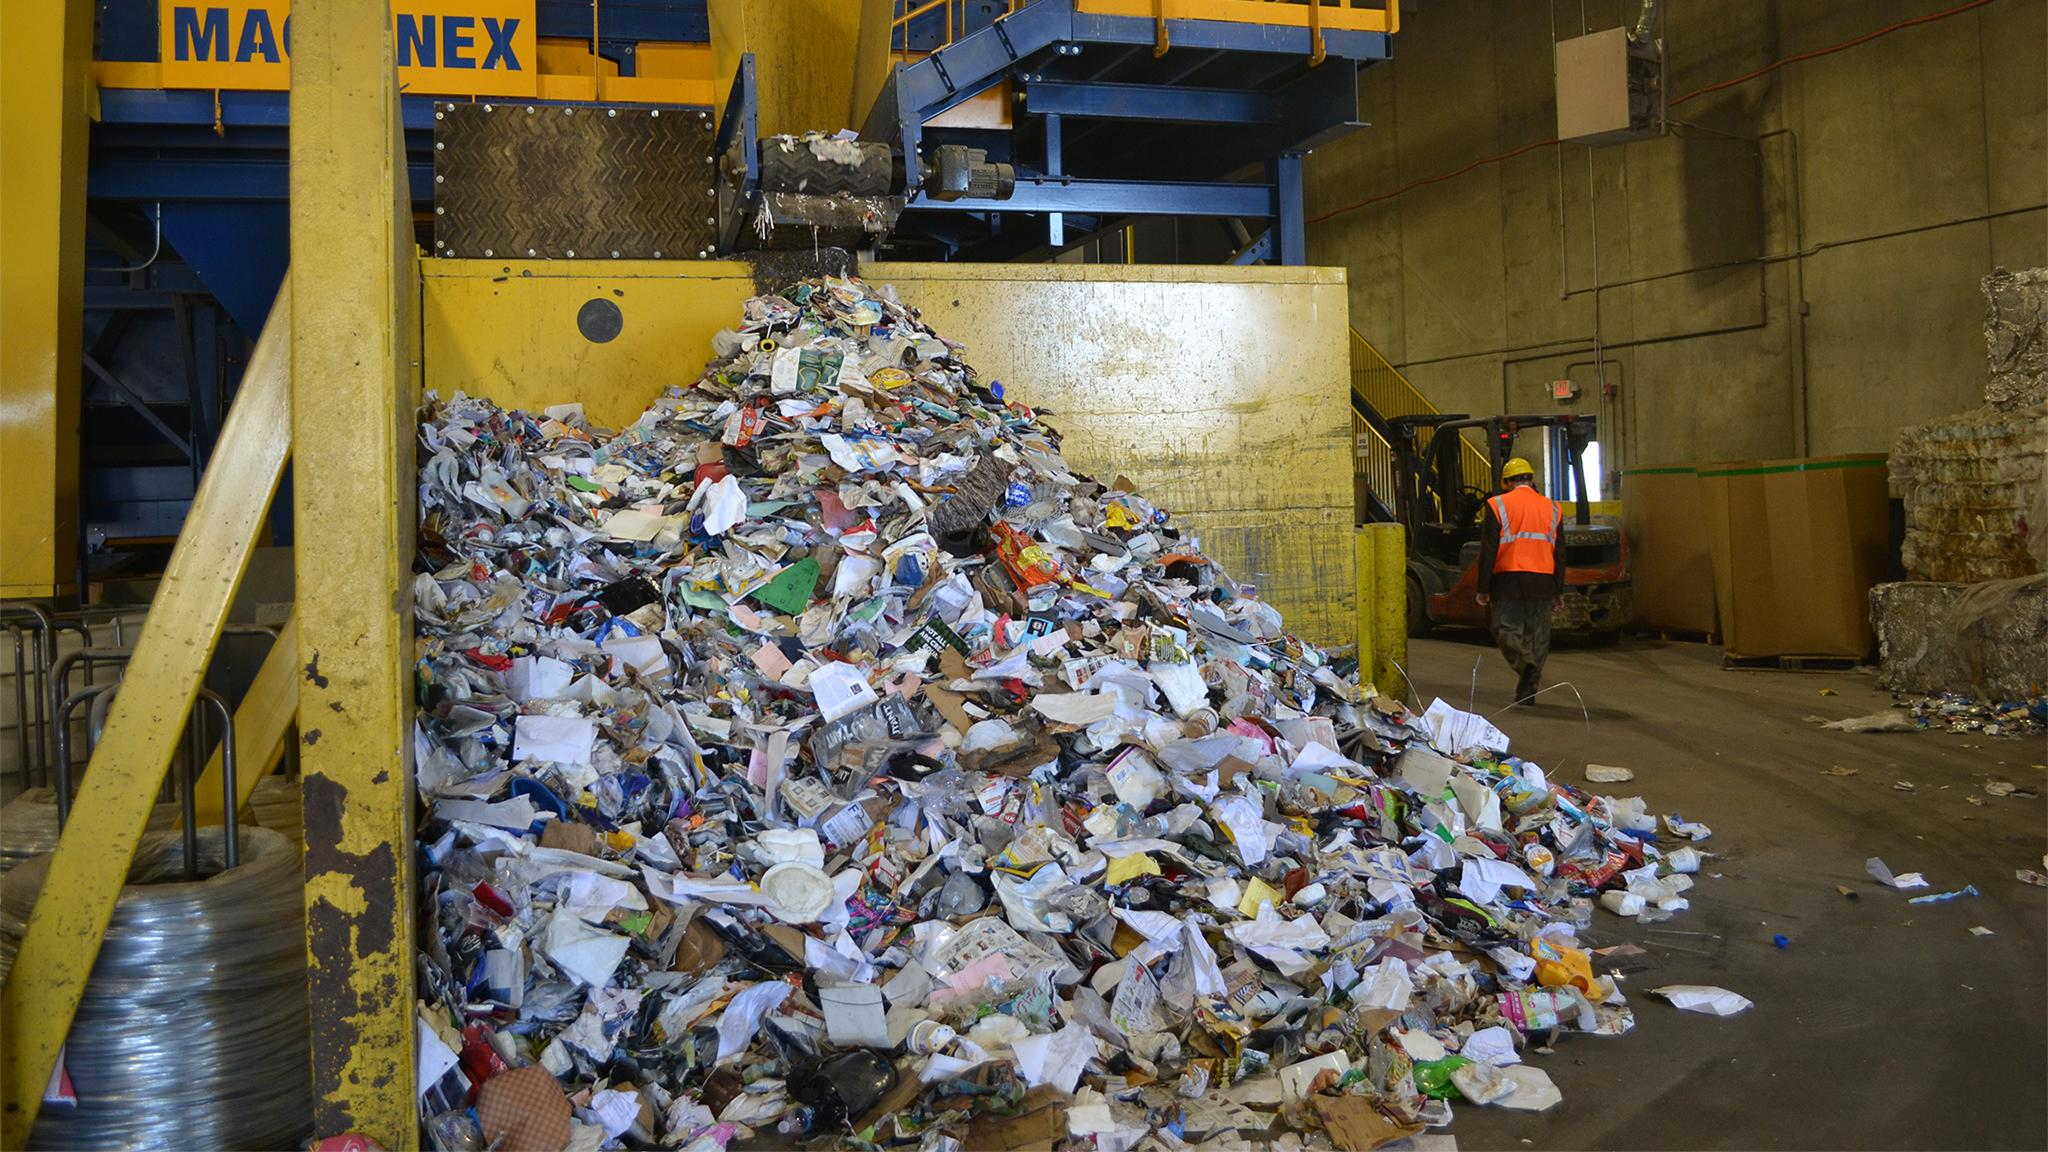 Where does all the recycled paper go